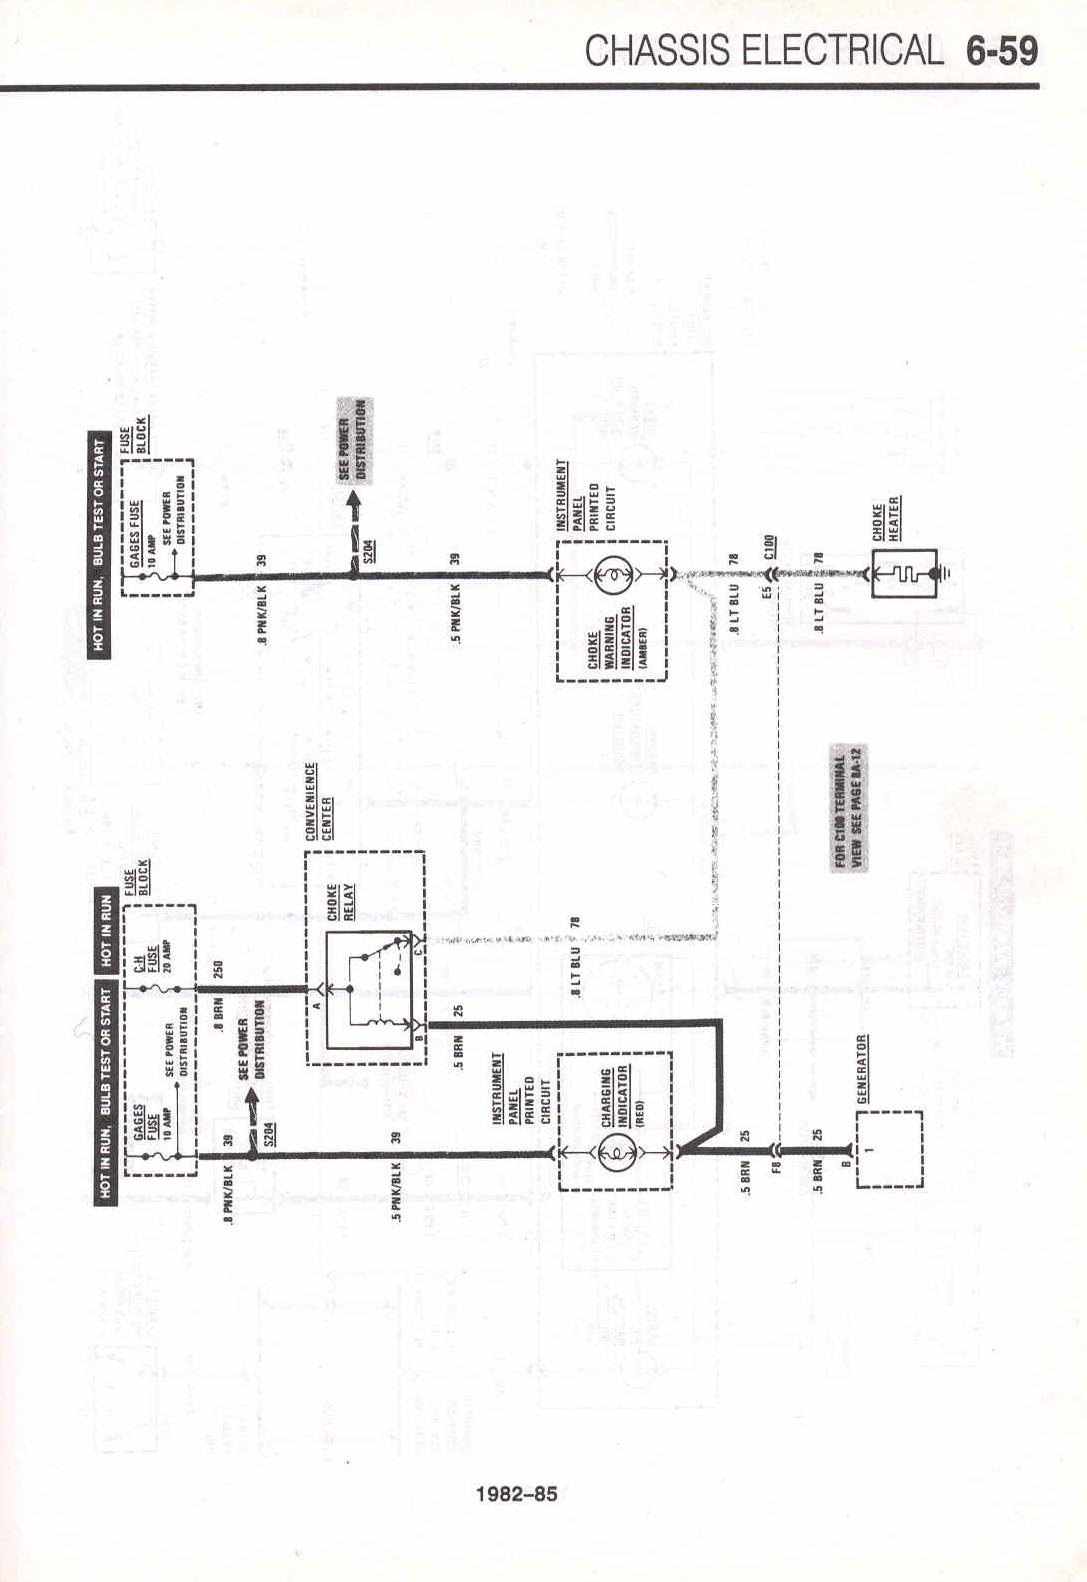 85 k5 wiper switch wiring diagram  85  get free image